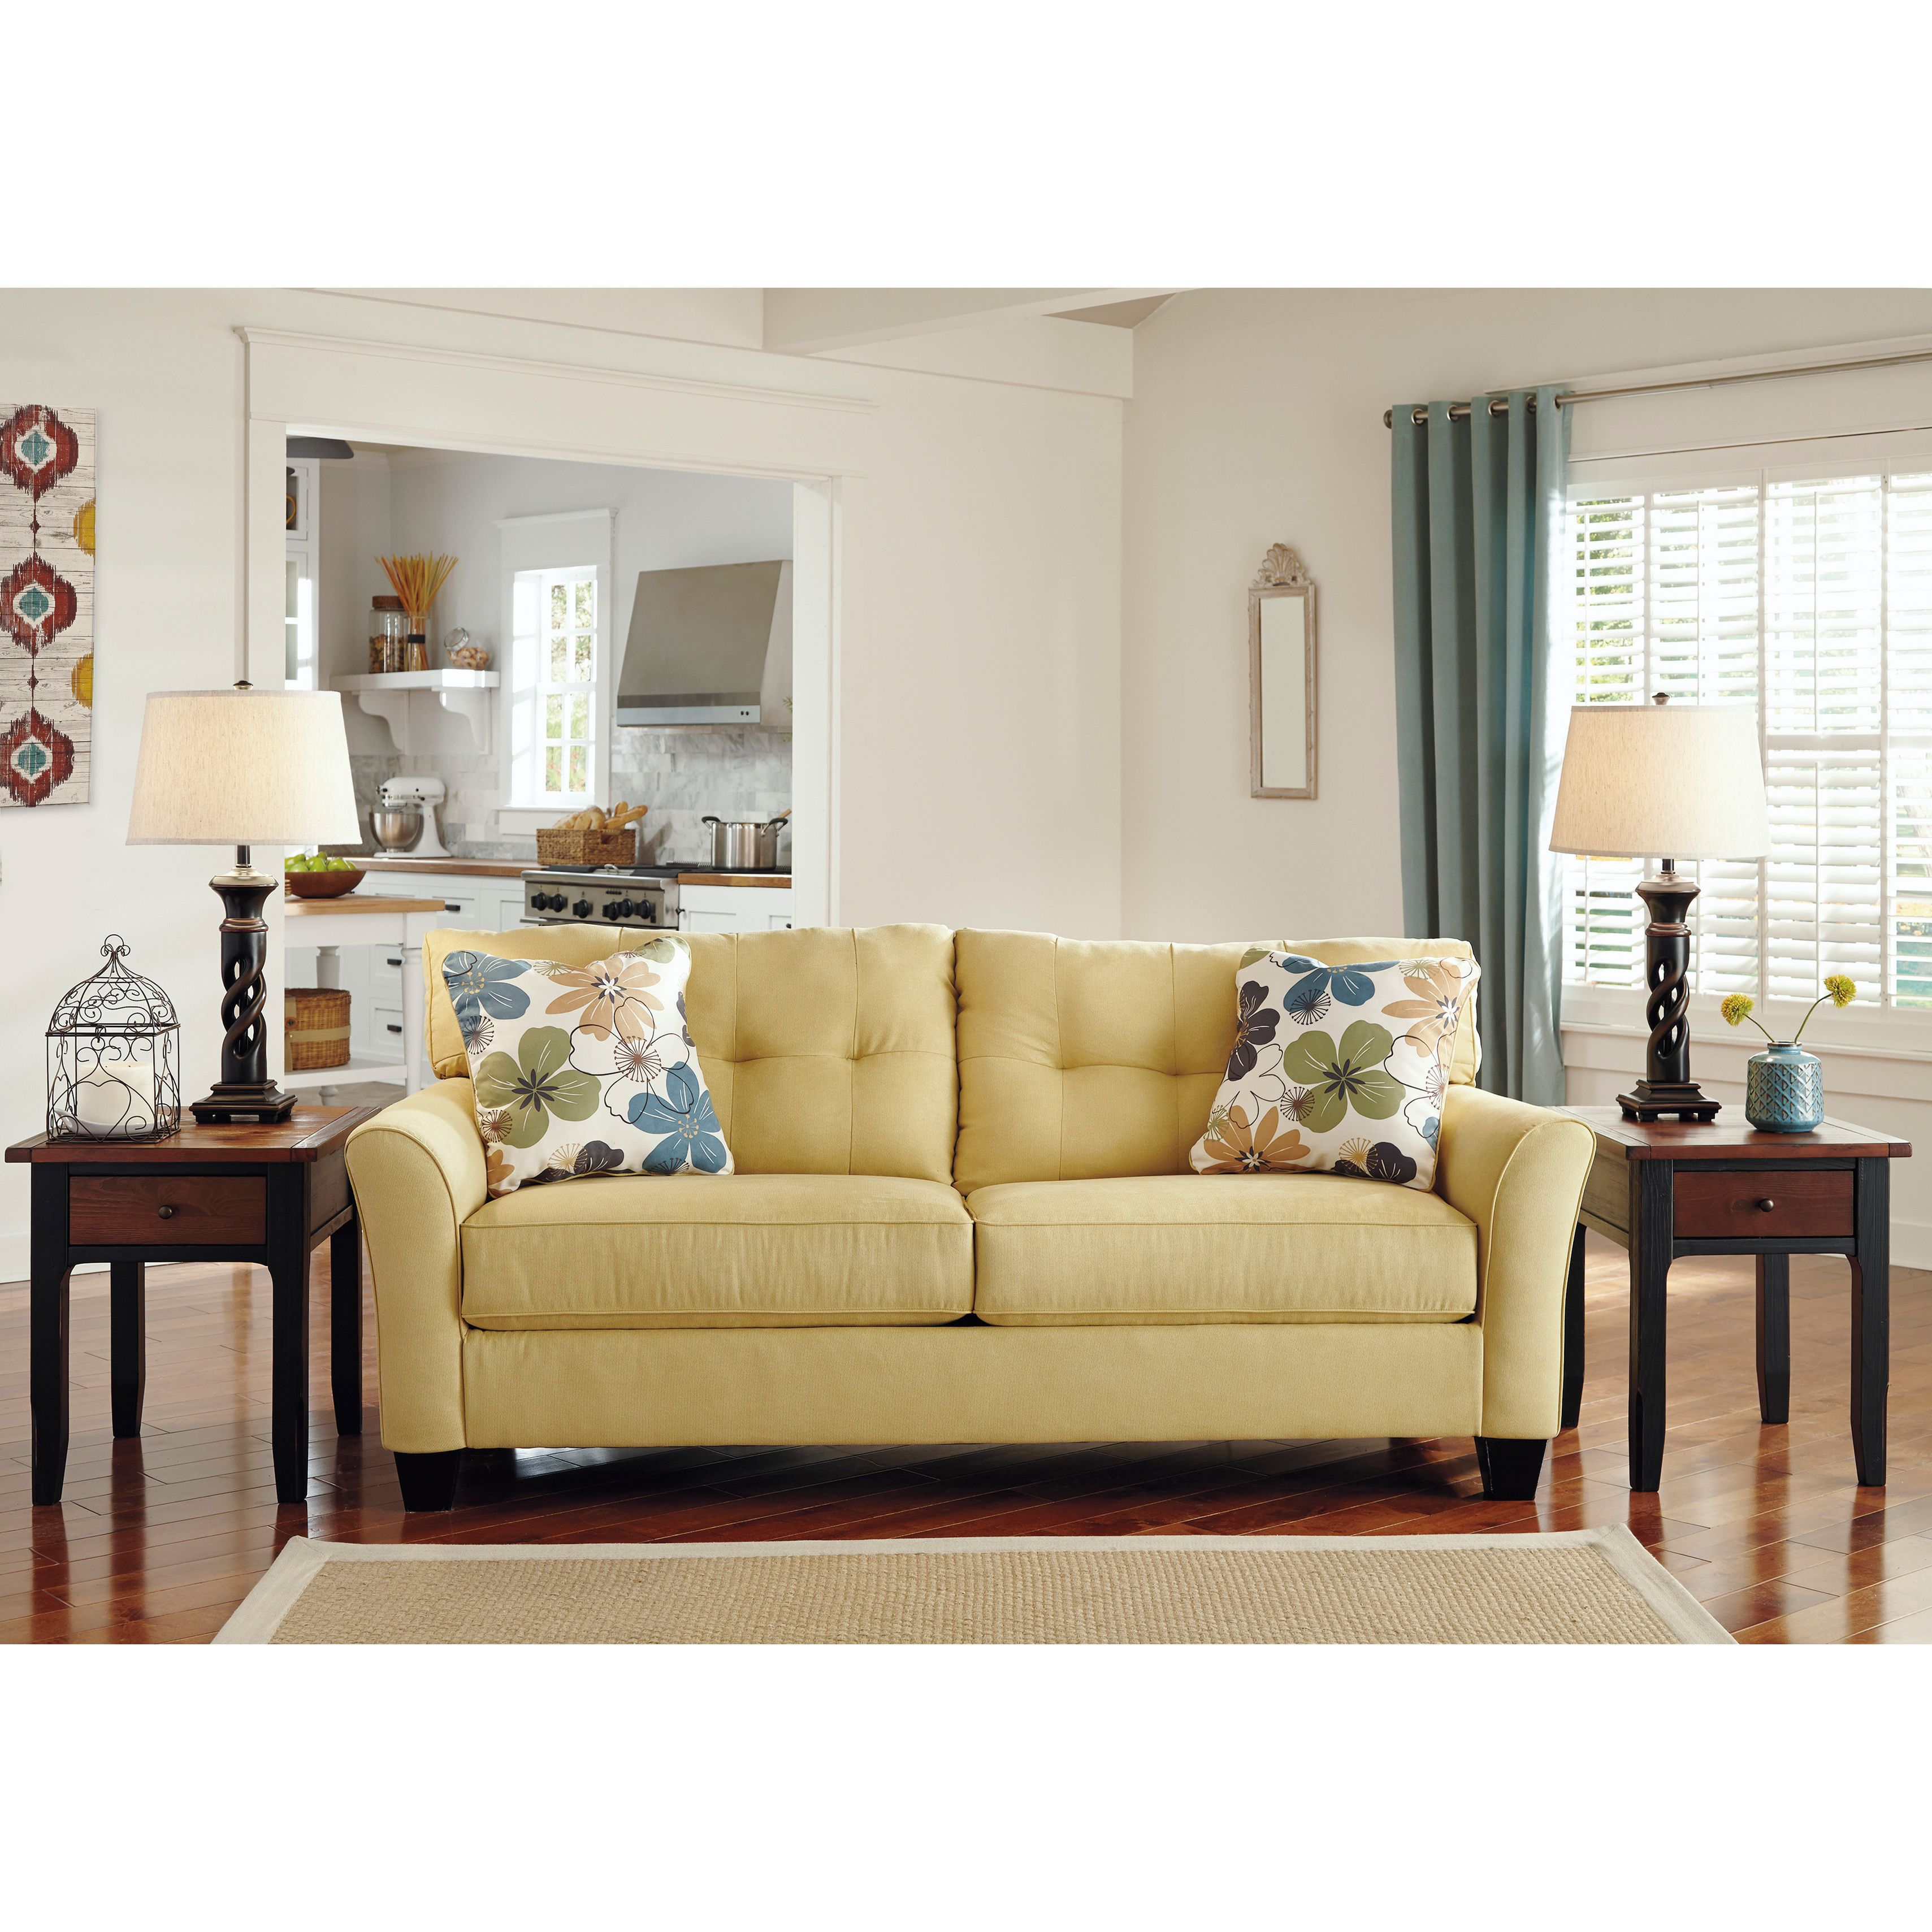 Overstock Com Online Shopping Bedding Furniture Electronics Jewelry Clothing More Contemporary Sofa Furniture Ashley Furniture